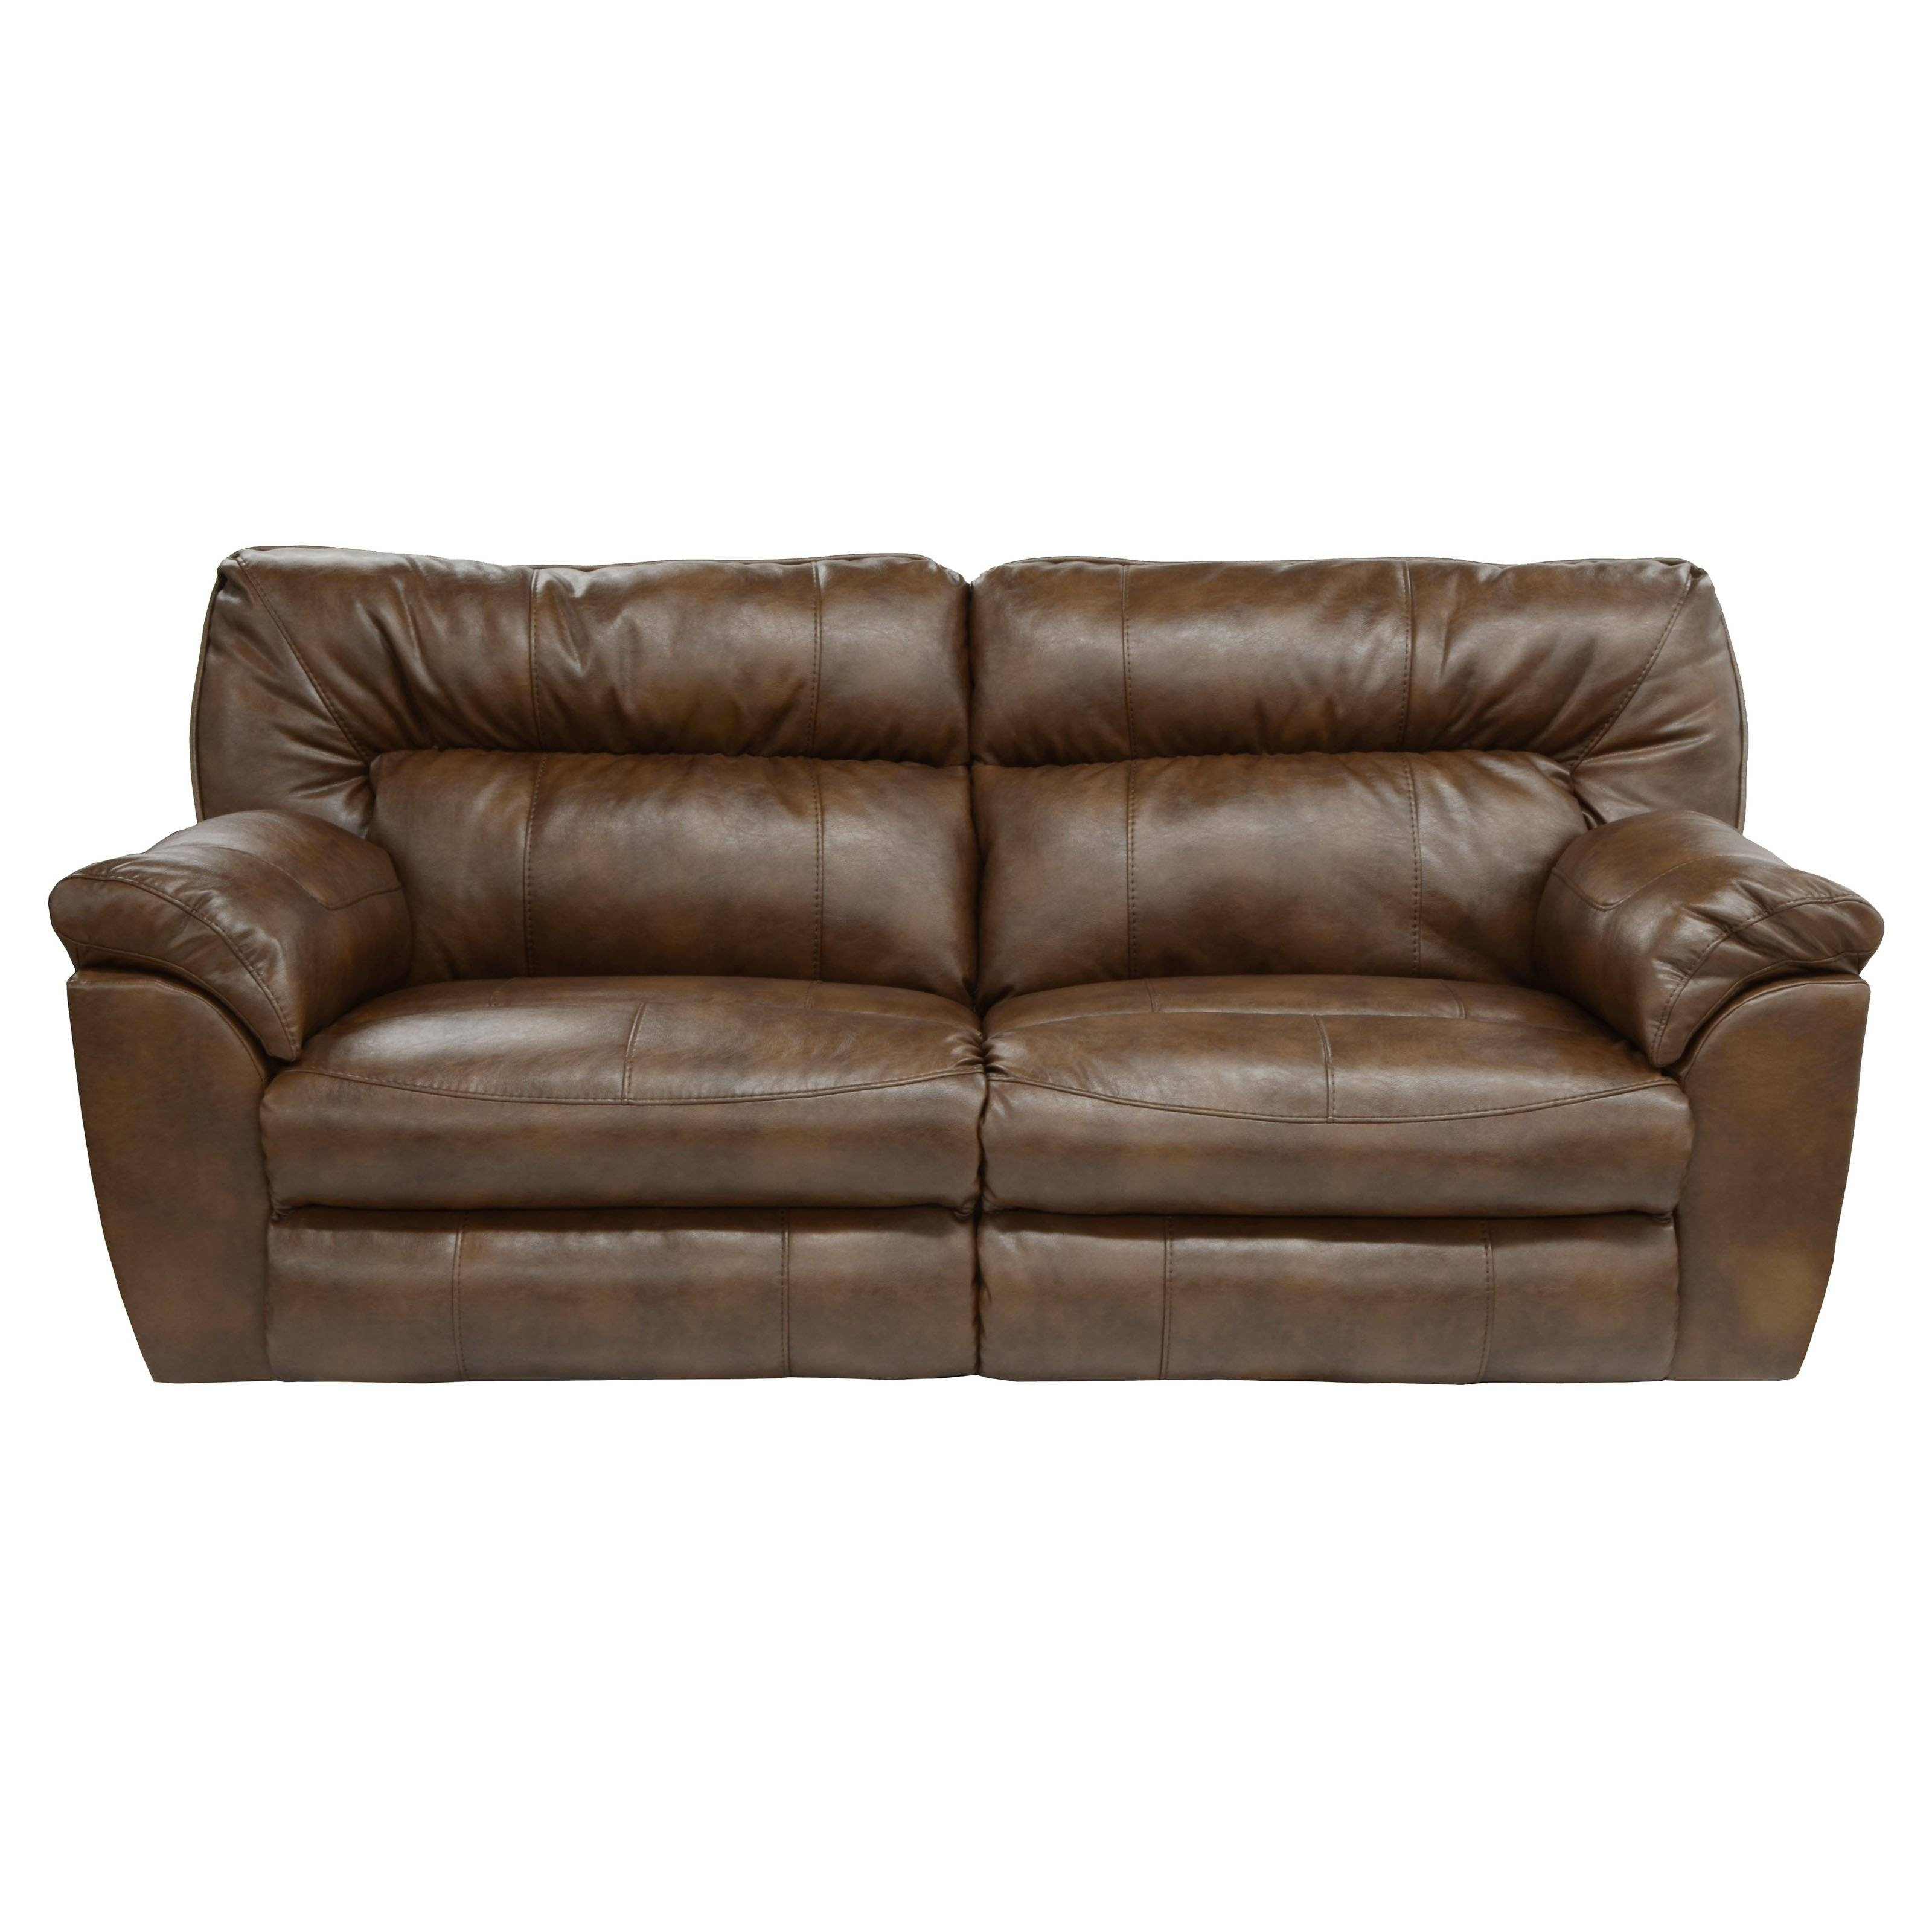 Catnapper Ferrington Headrest Power Reclining Sofa | Hayneedle in Catnapper Reclining Sofas (Image 6 of 15)